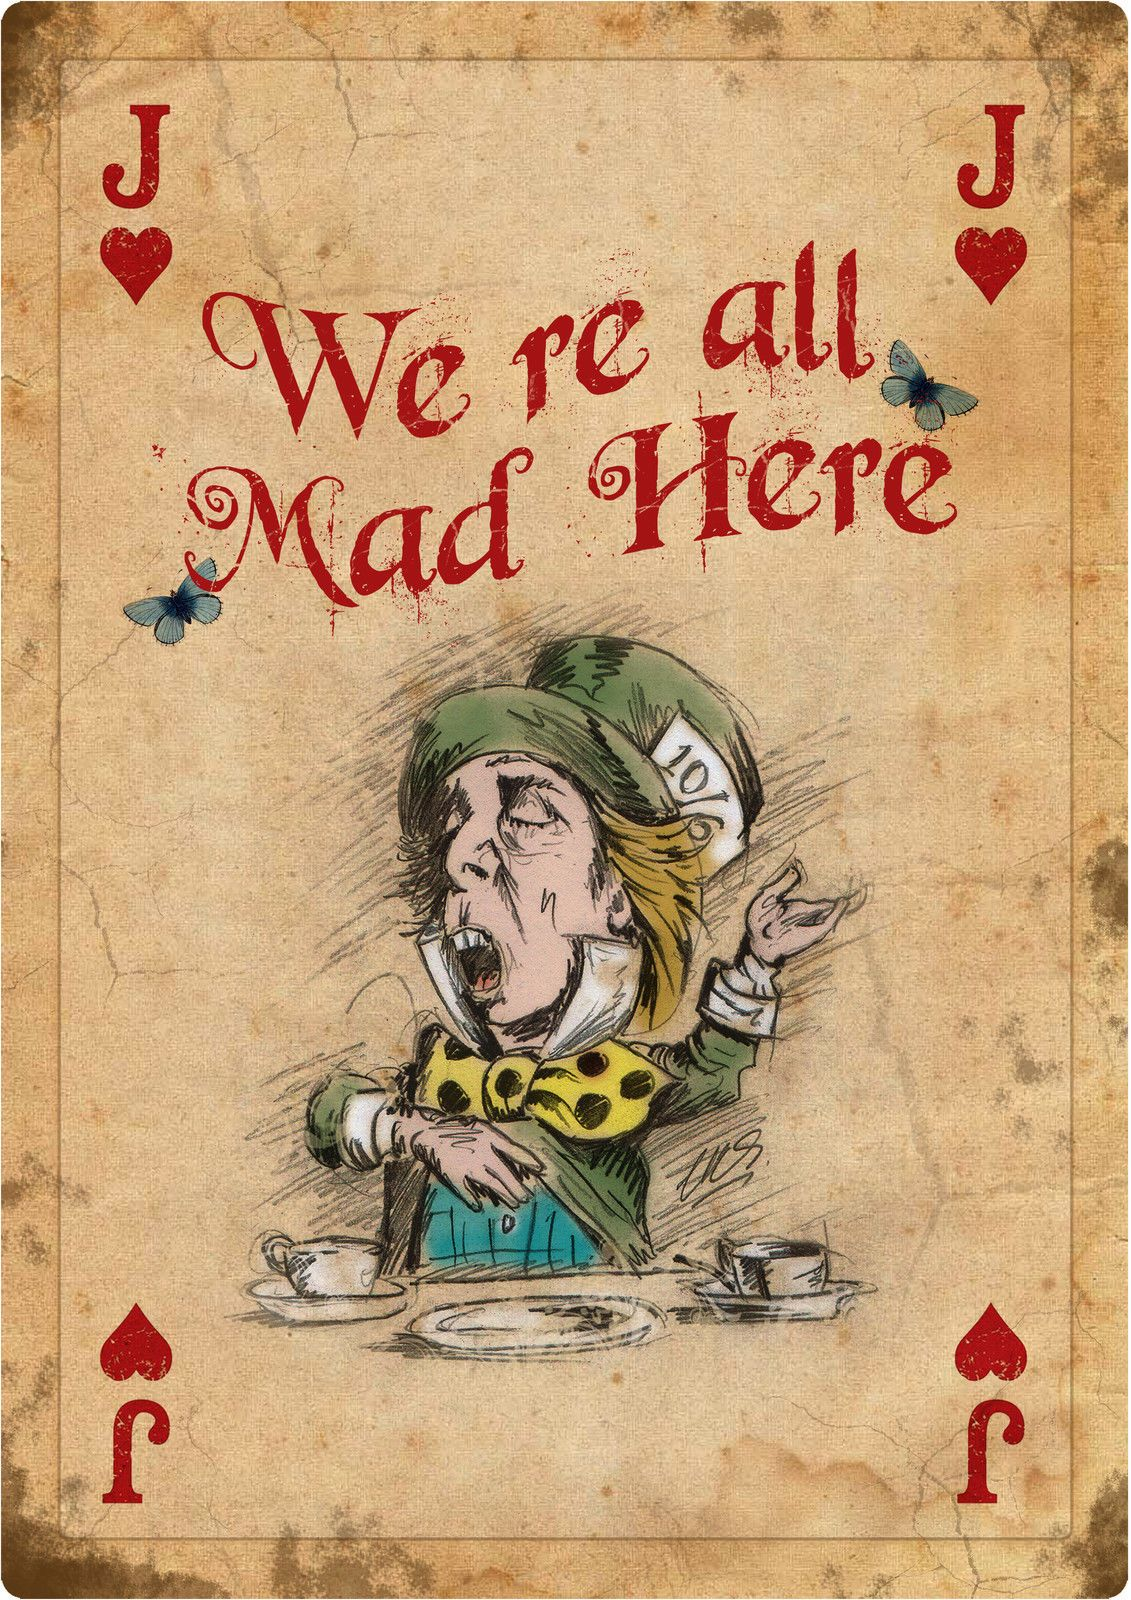 4 Alice In Wonderland Giant Vintage Playing Cards Mad Hatter Tea